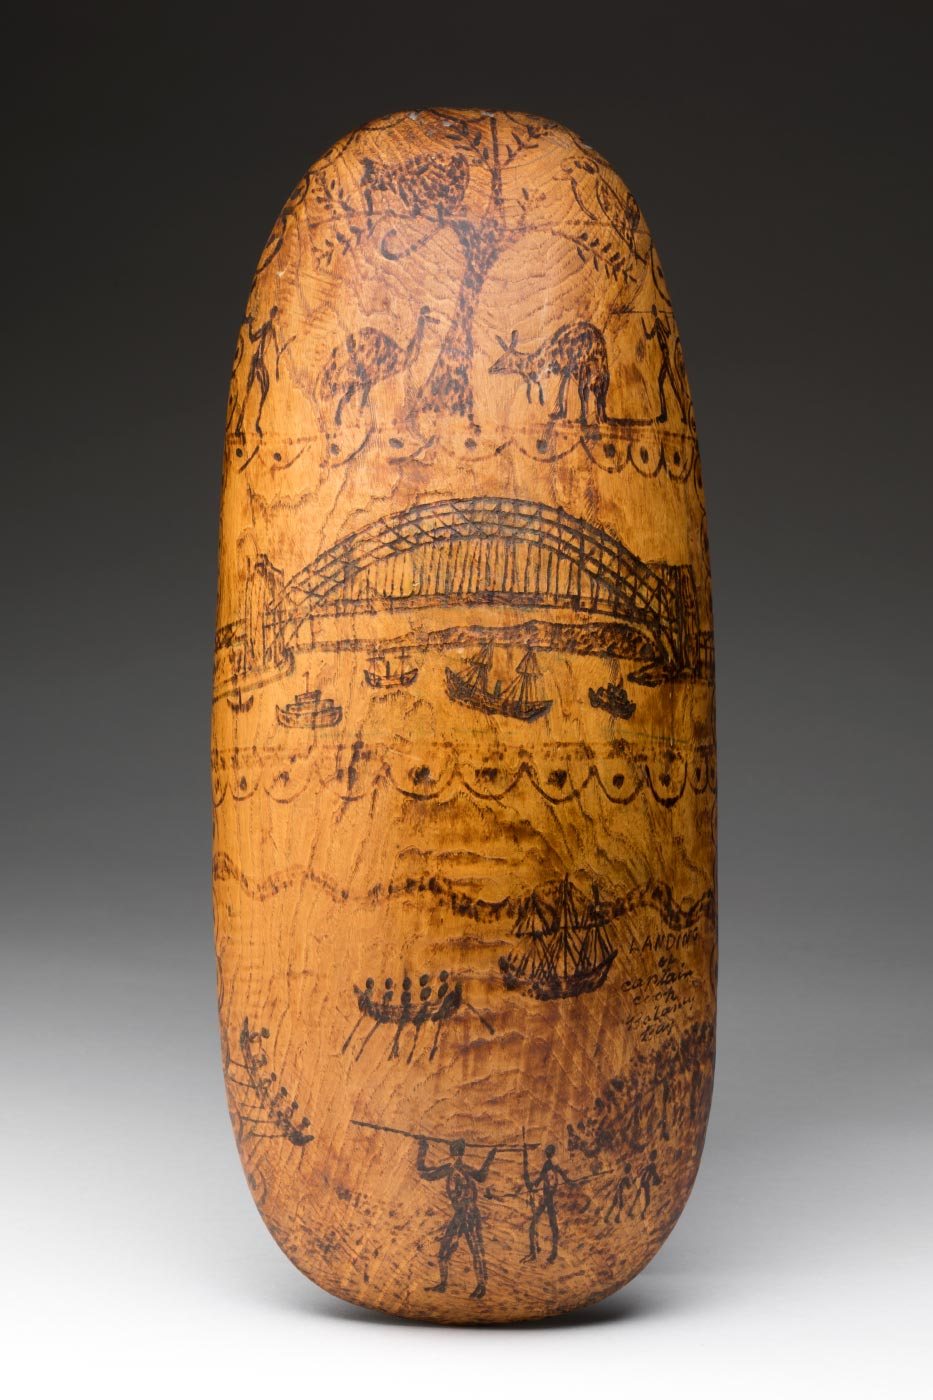 Wooden shield with illustrations of Australiana etched into surface.